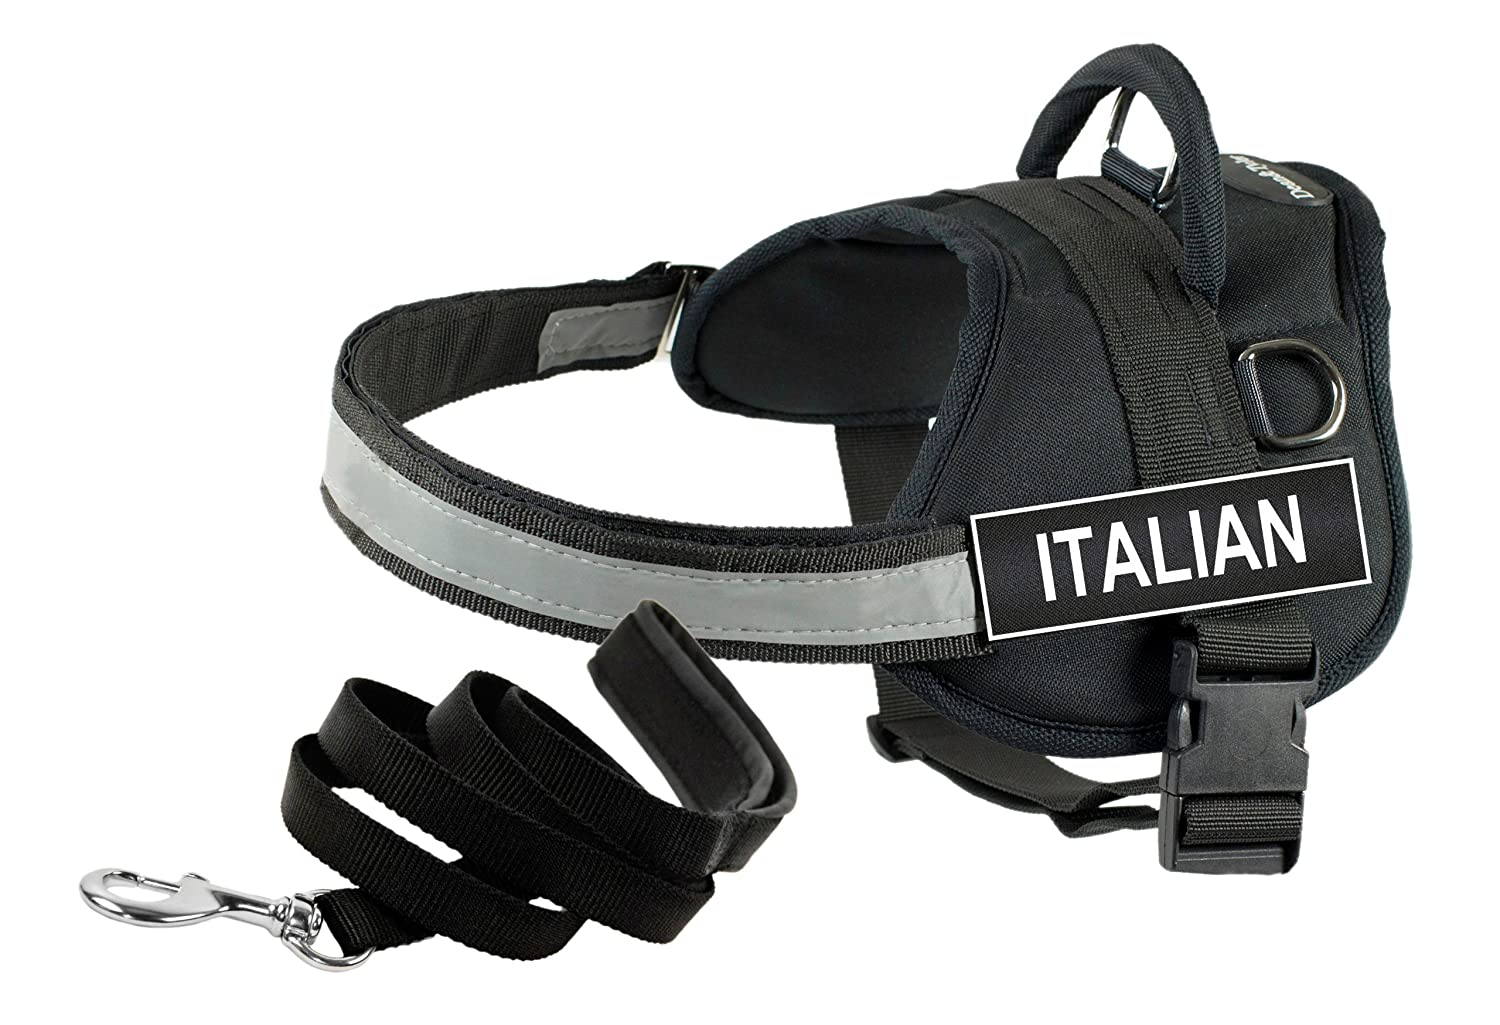 Dean & Tyler's DT Works ITALIAN Harness, Small, with 6 ft Padded Puppy Leash.